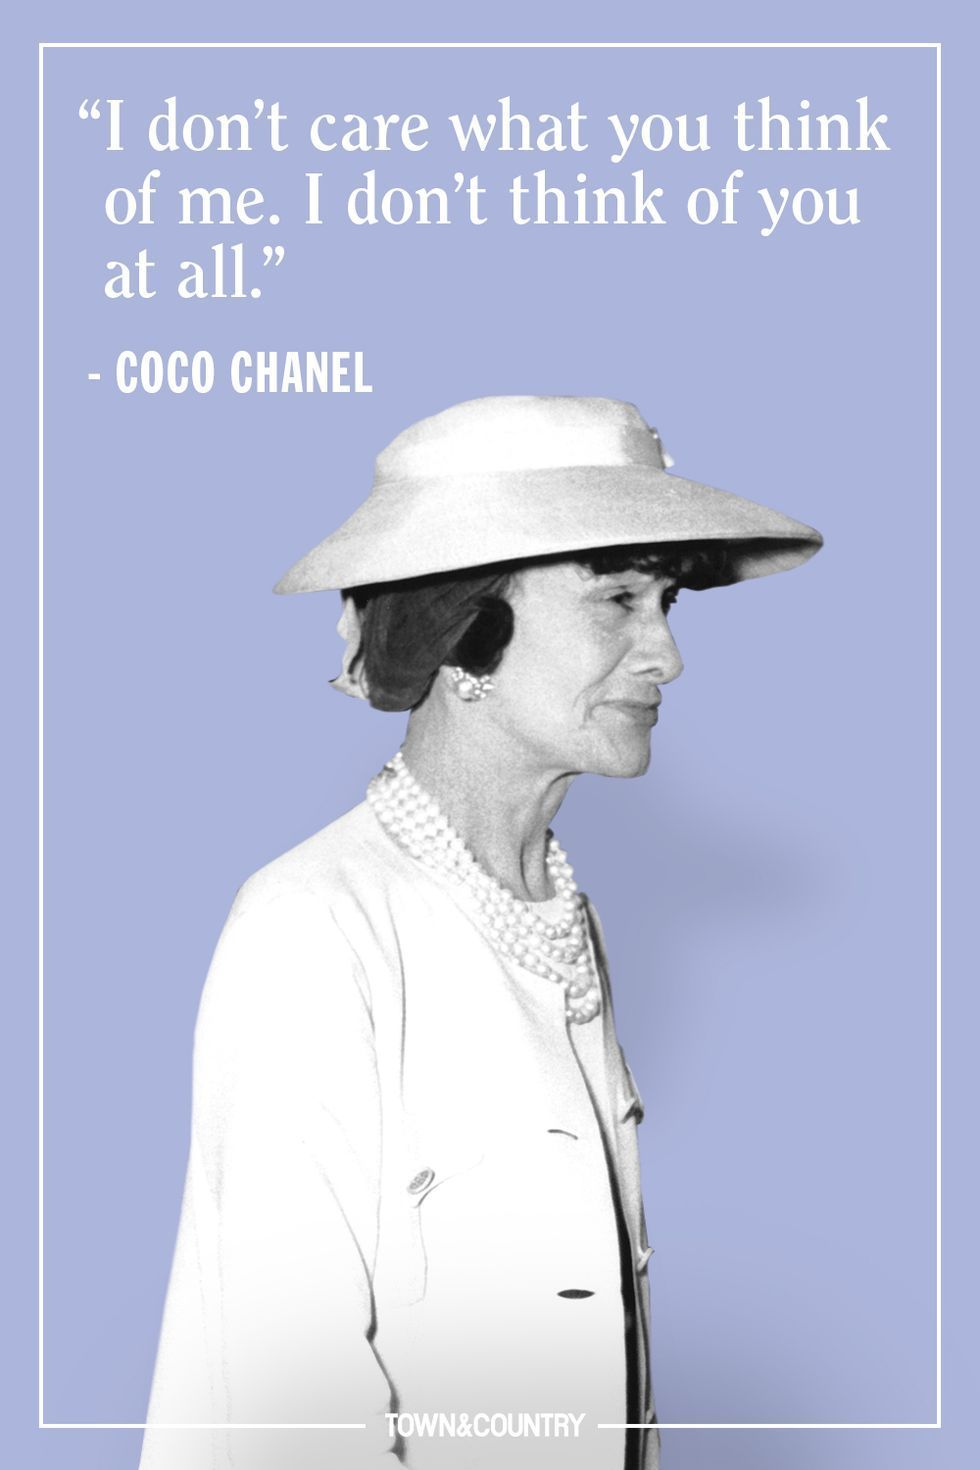 25 Coco Chanel Quotes Every Woman Should Live By